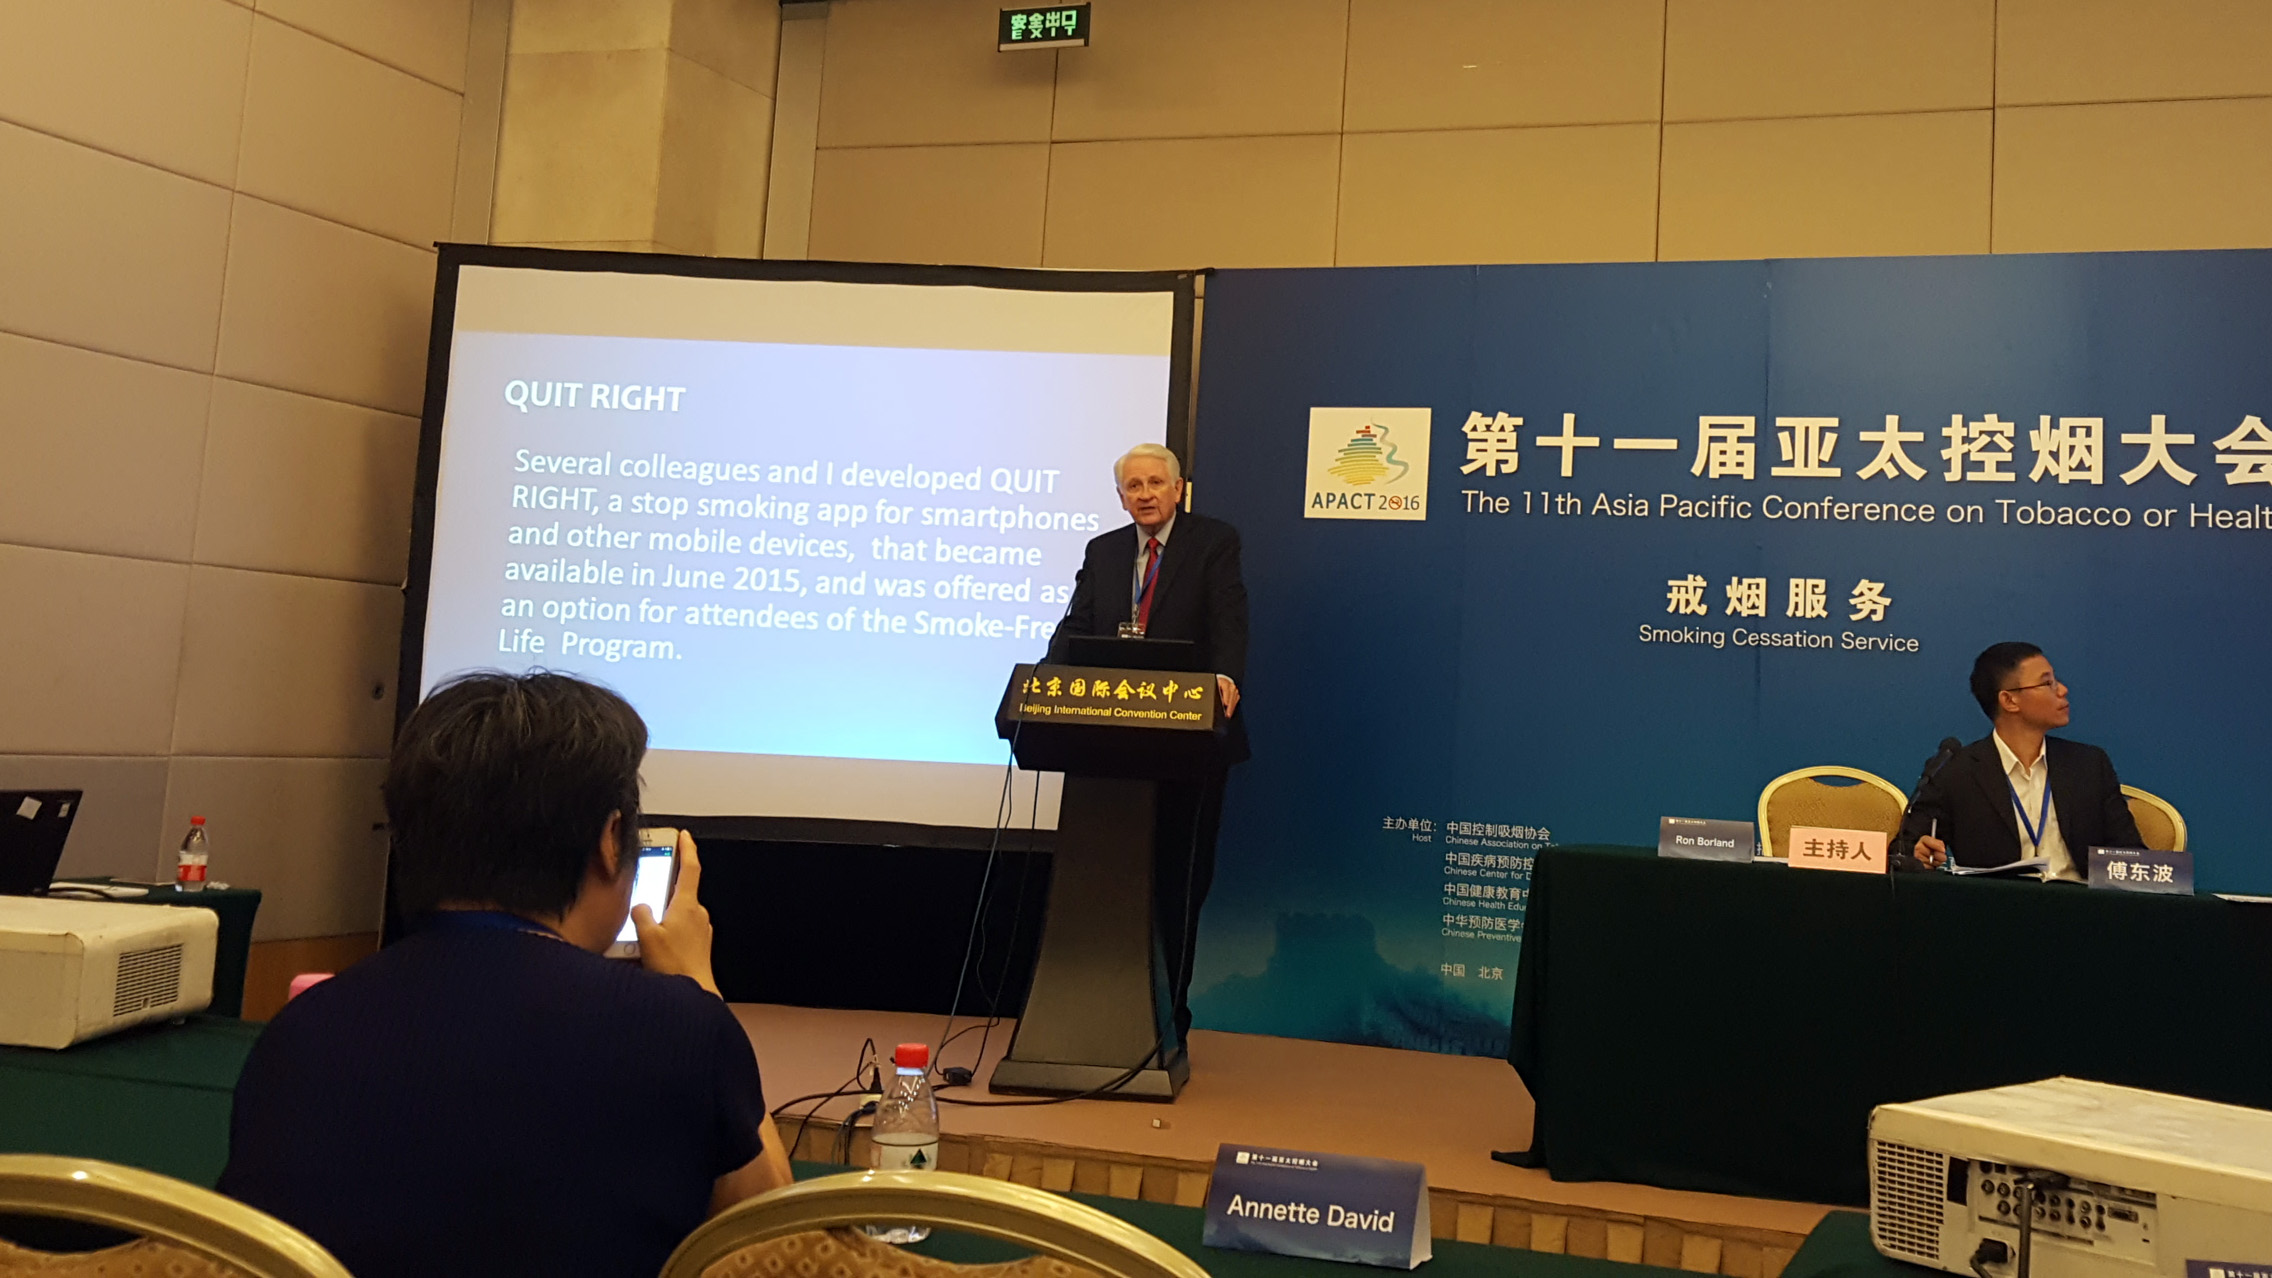 Dr. Hodgkin presents in China on his stop smoking program.